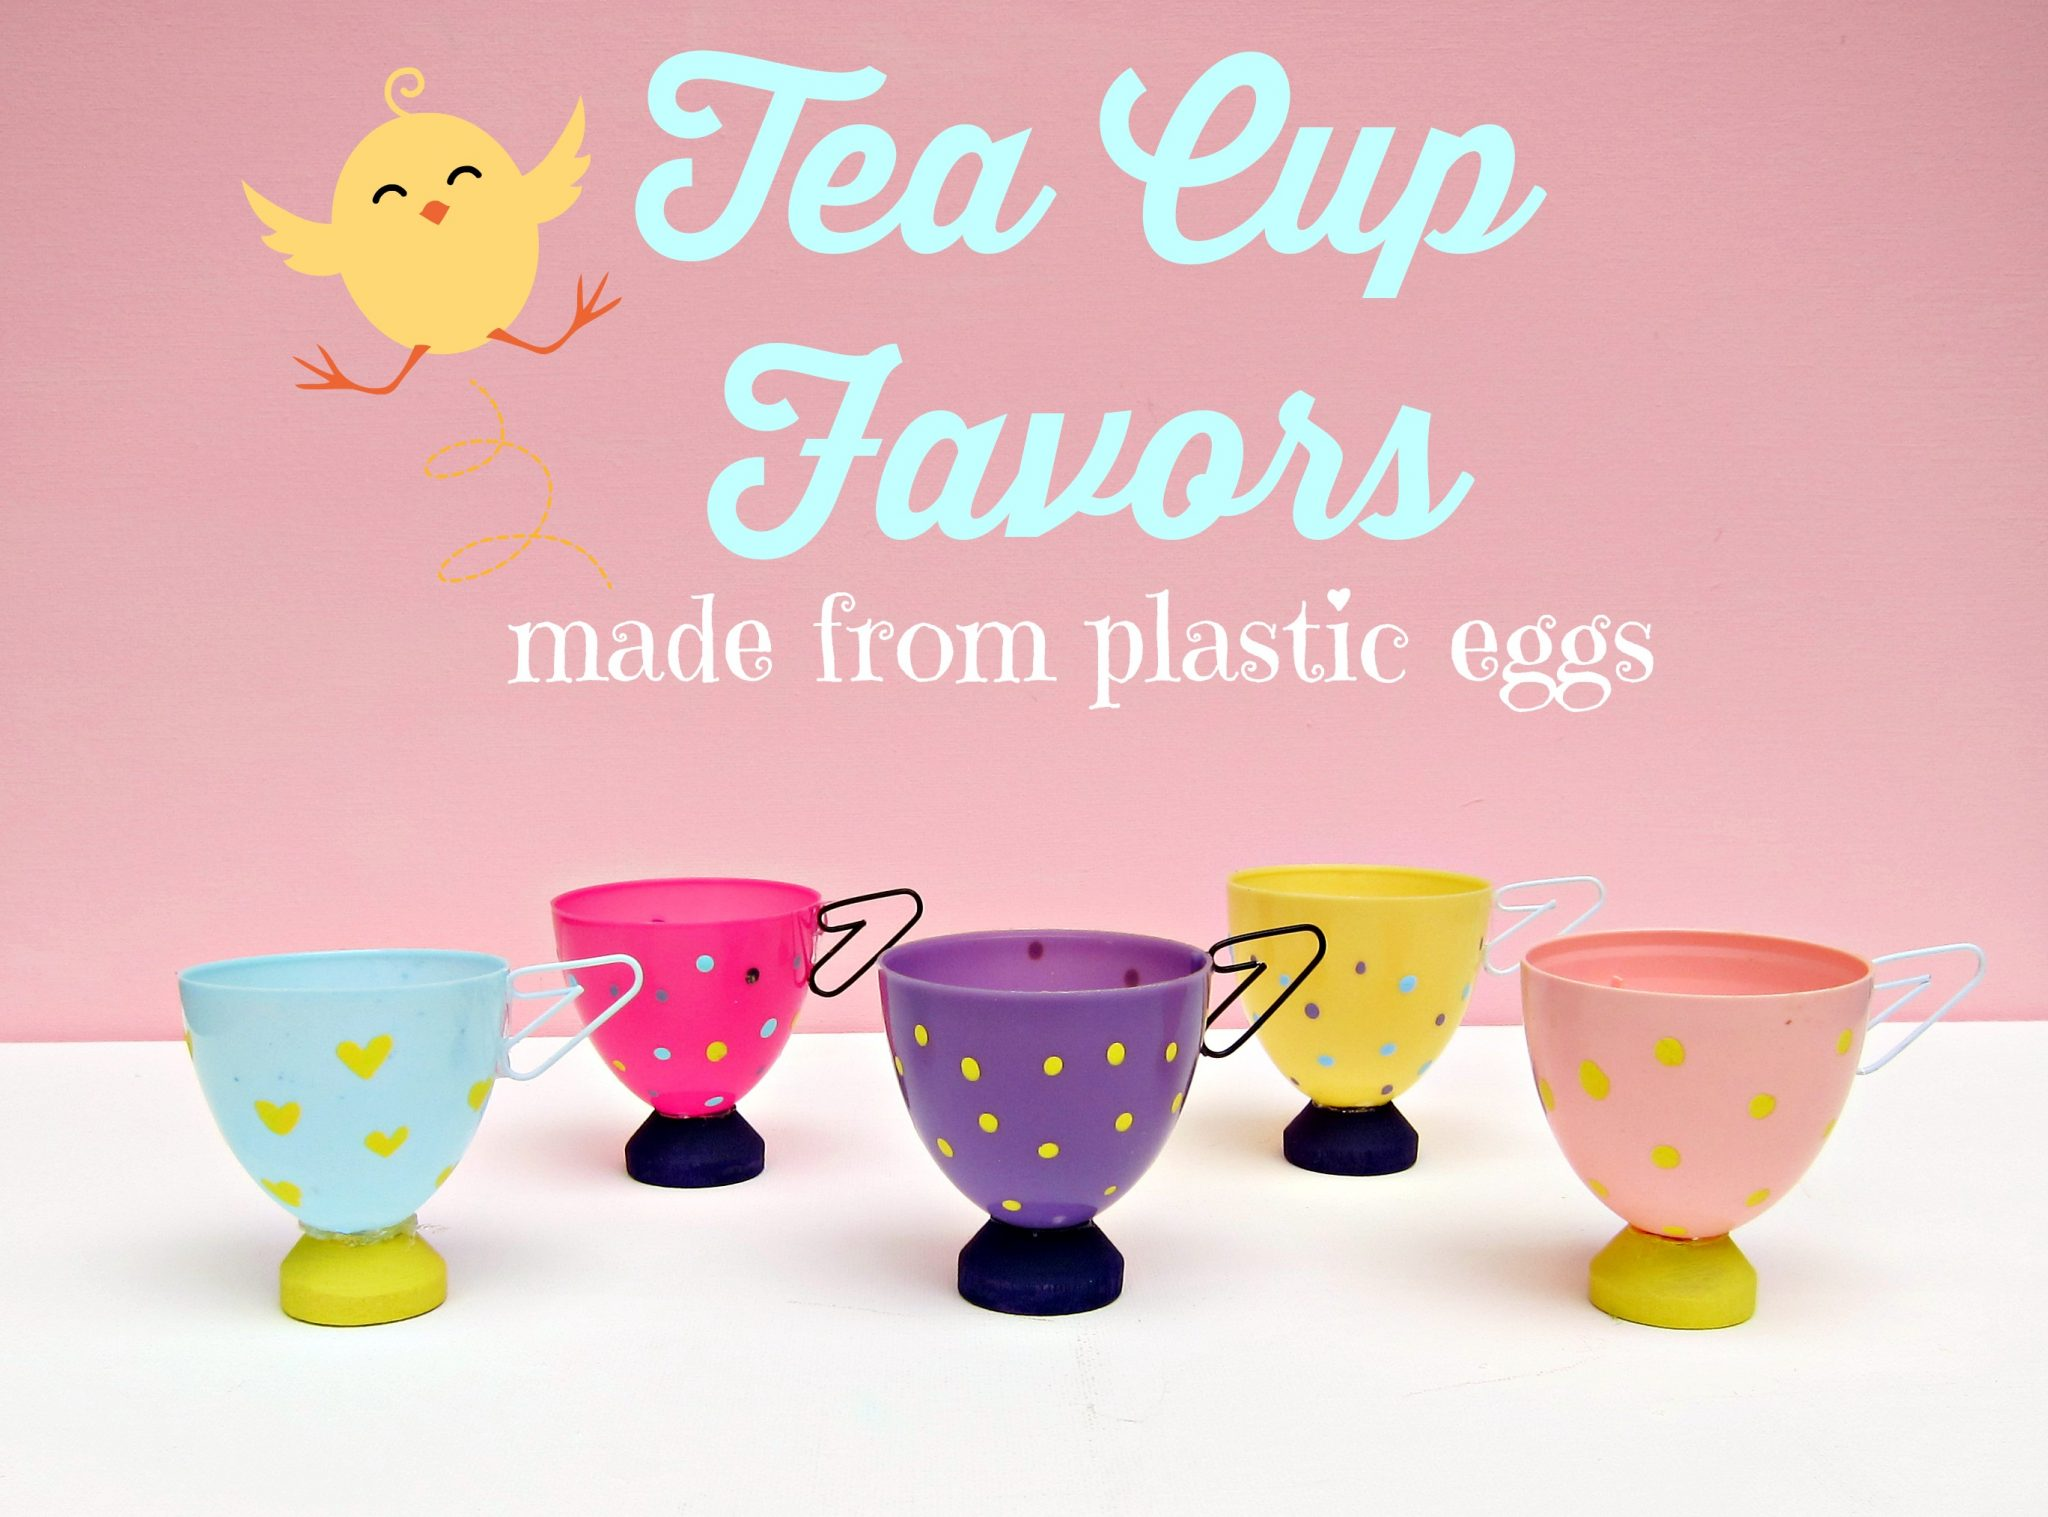 Tea Cup Party Favors Made from Plastic Eggs » Dollar Store Crafts